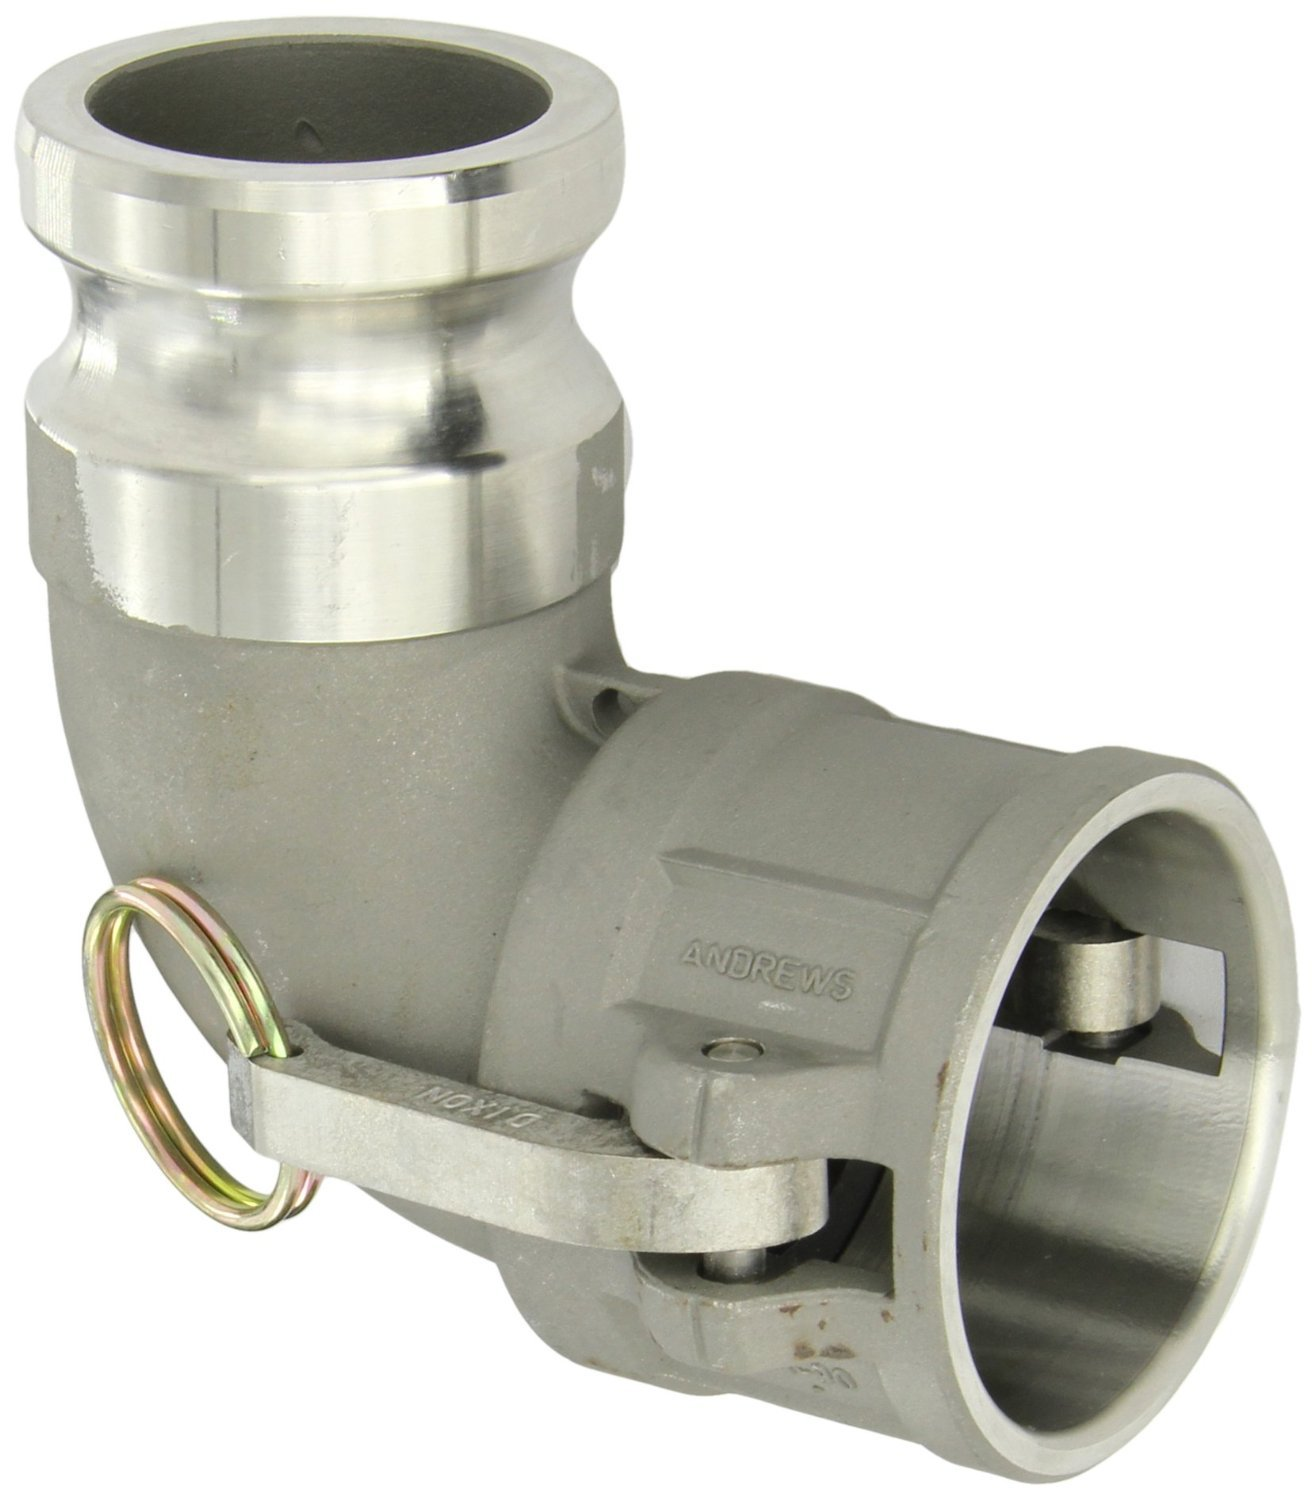 Dixon 200DA-90SS Stainless Steel 316 Cam and Groove Hose Fitting, 90 Degree Elbow, 2'' Plug x 2'' Socket